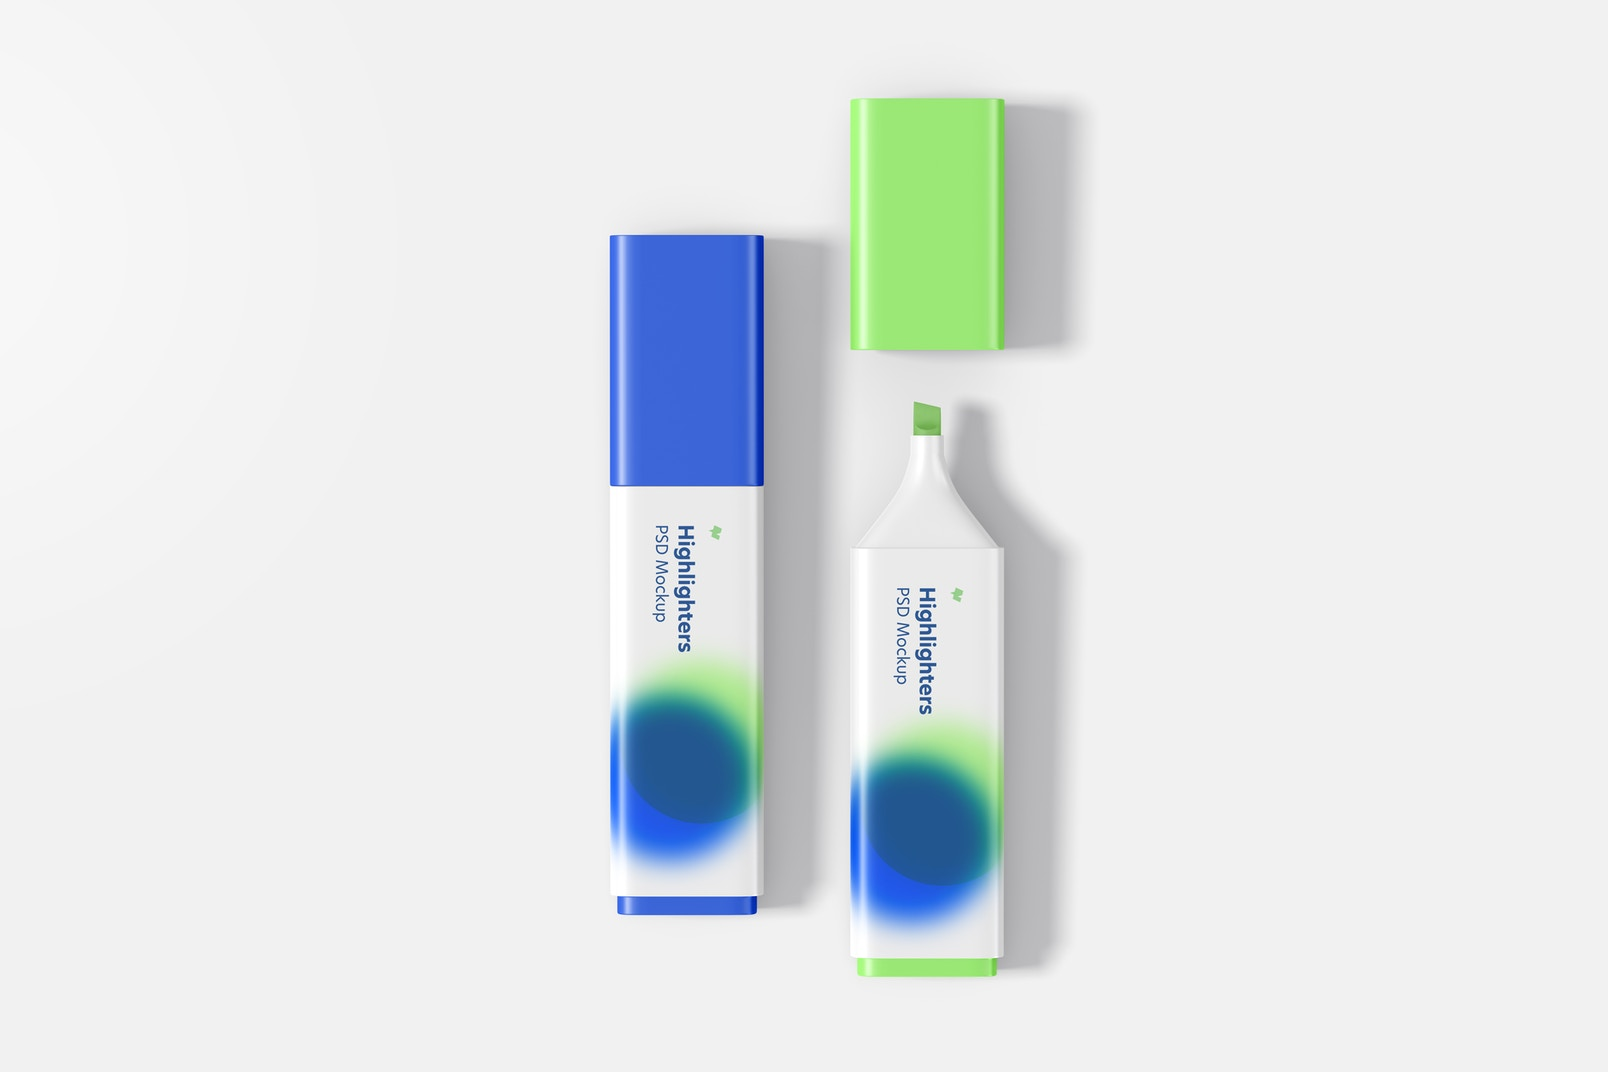 Highlighter Pens Mockup, Opened and Closed